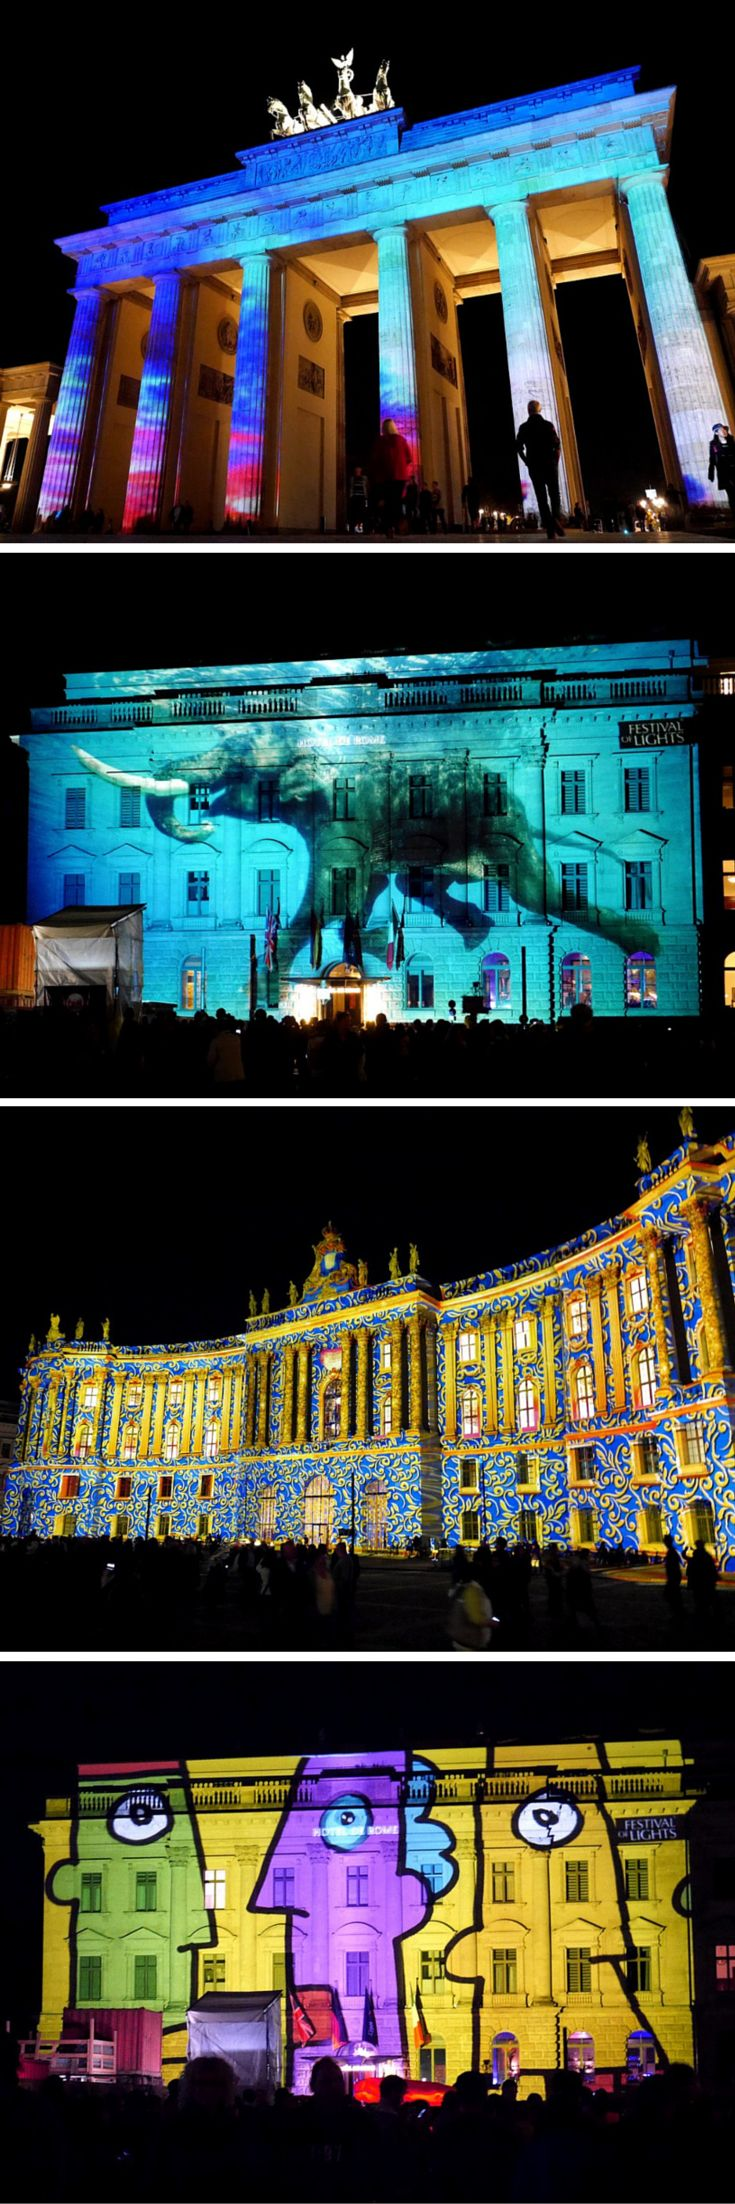 Berlin illuminated: that was awesome